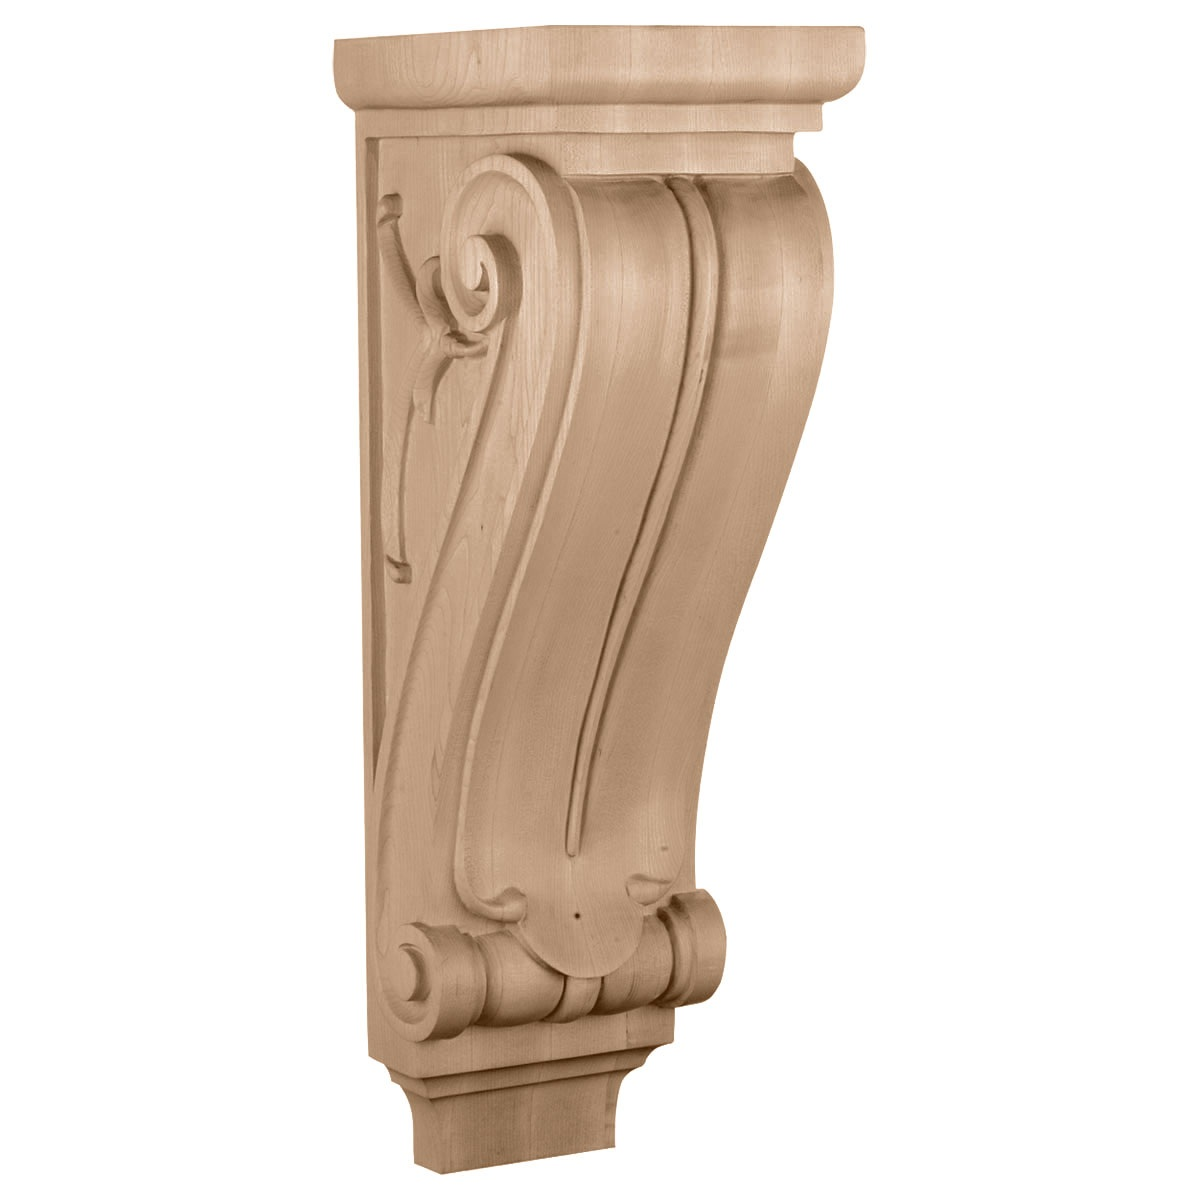 CORCL4 Medium Classical Corbel